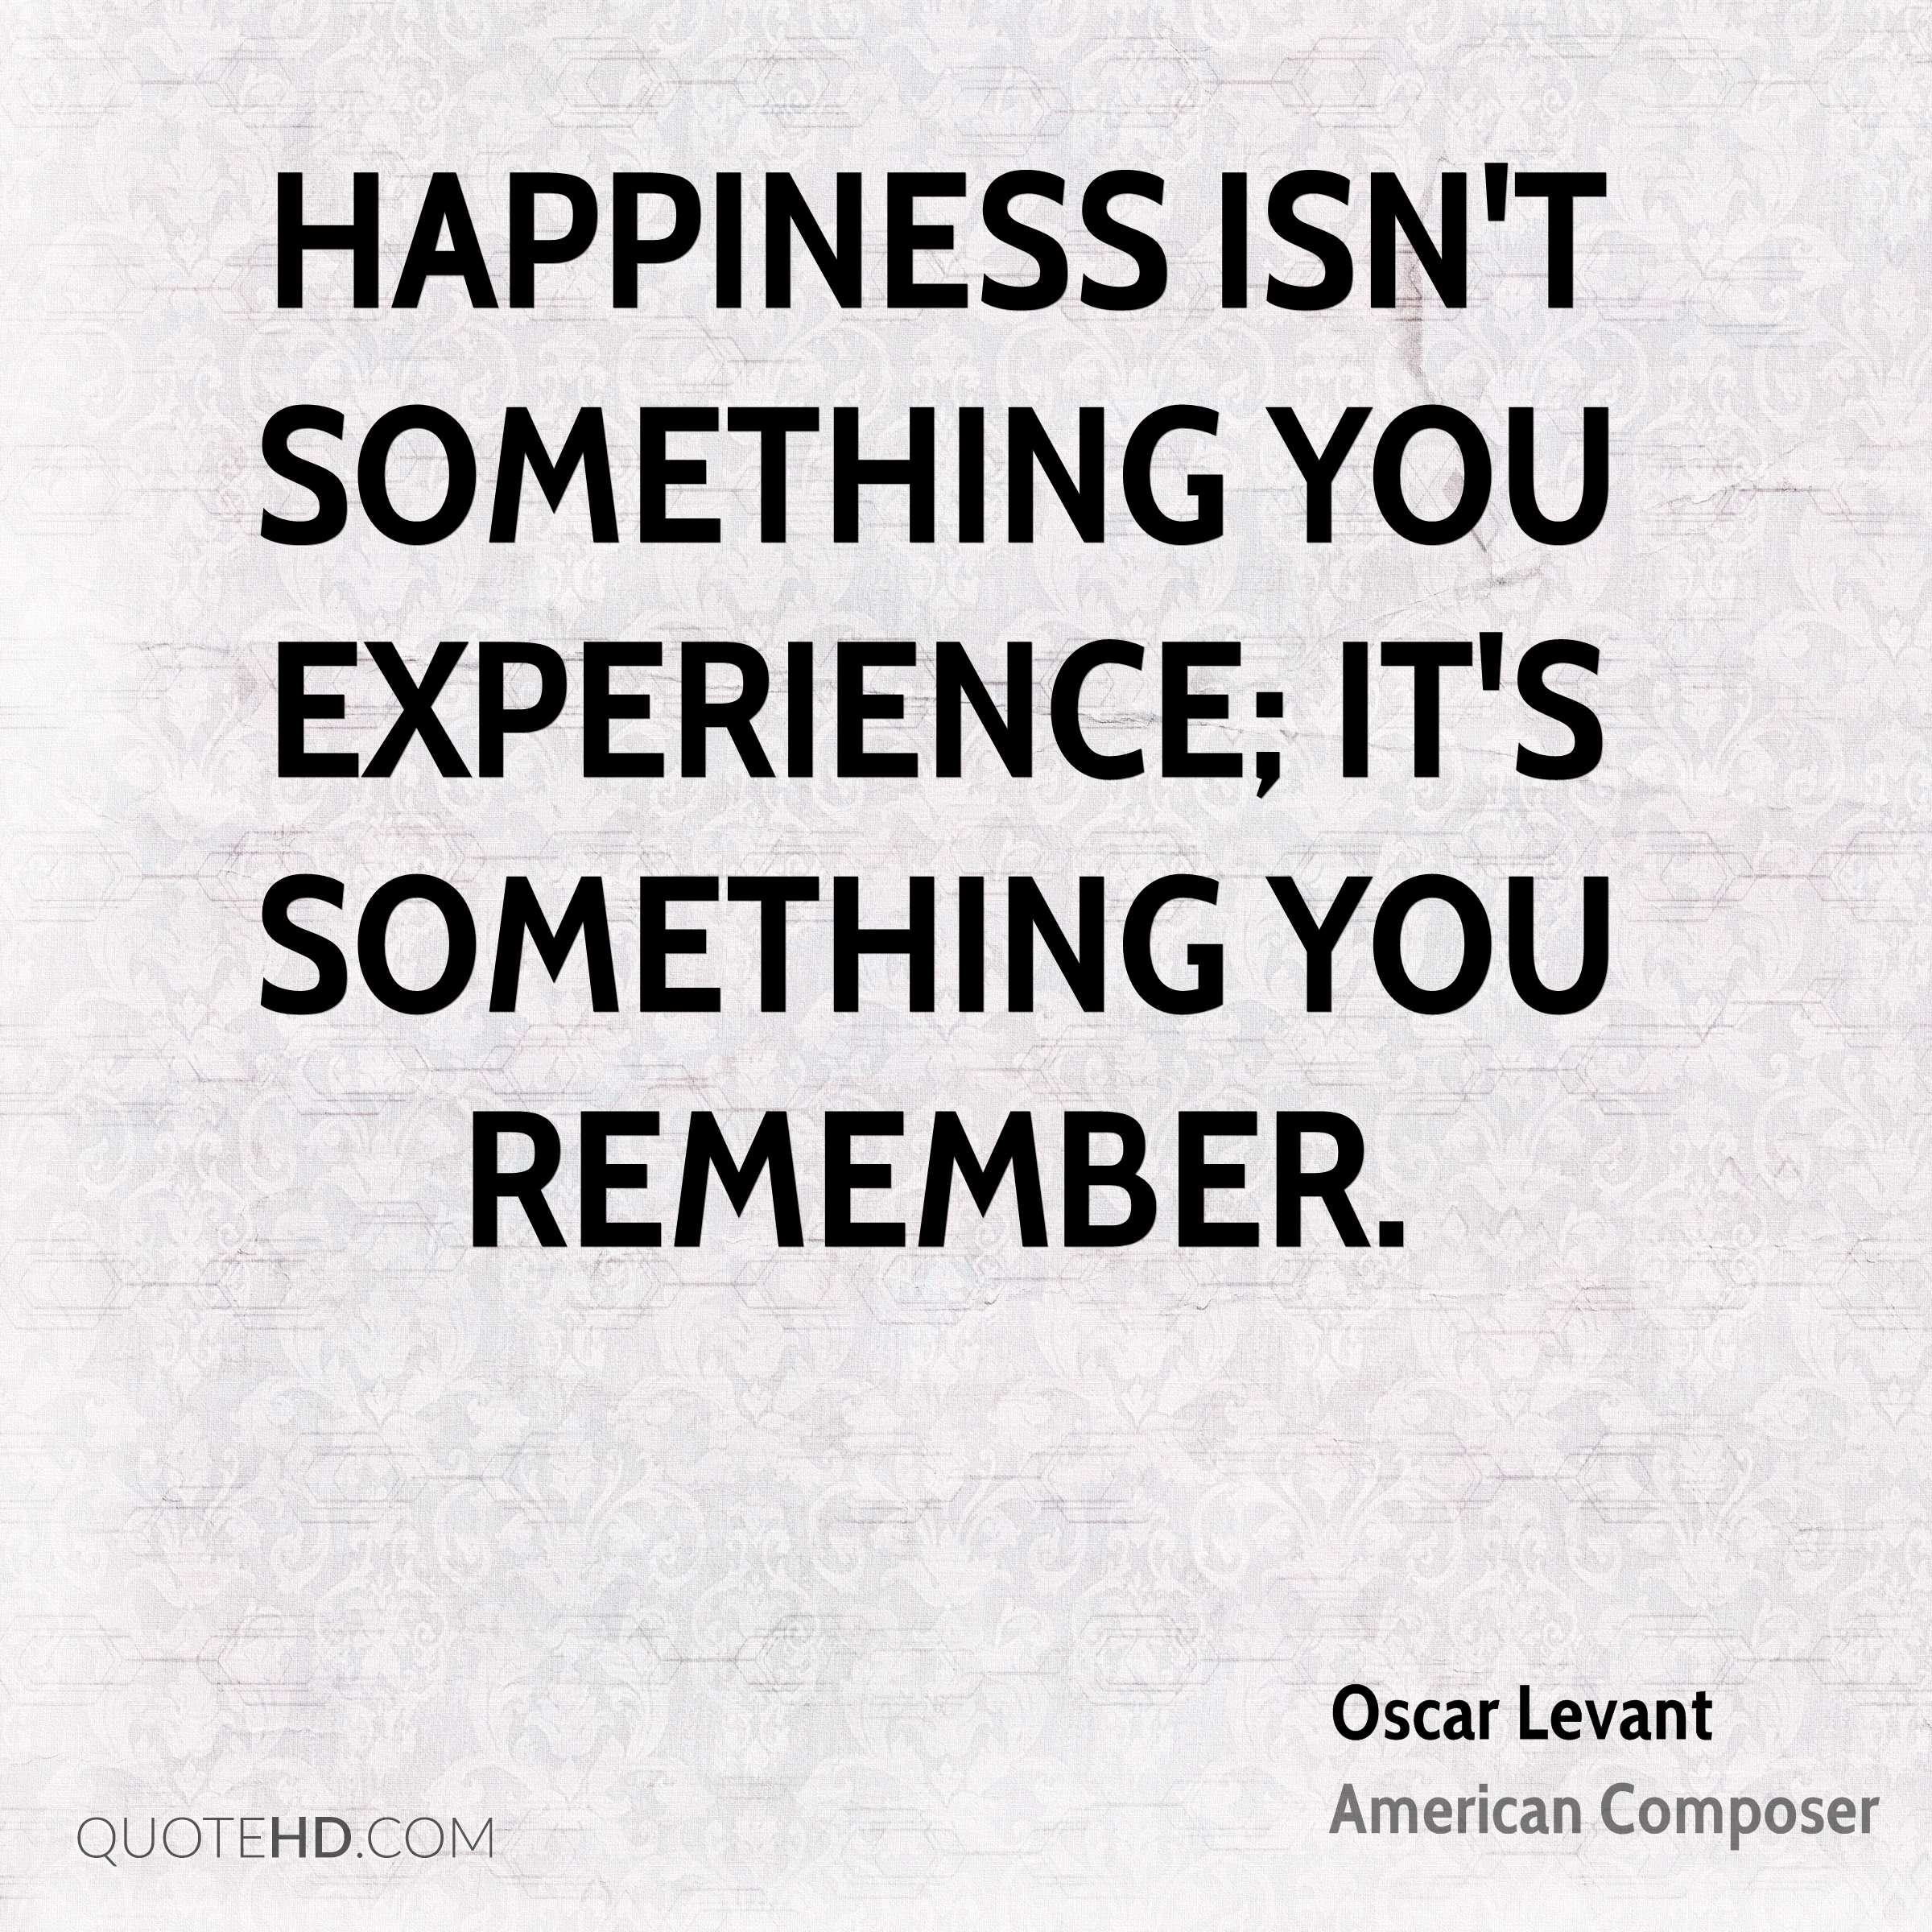 Happiness isn't something you experience; it's something you remember.